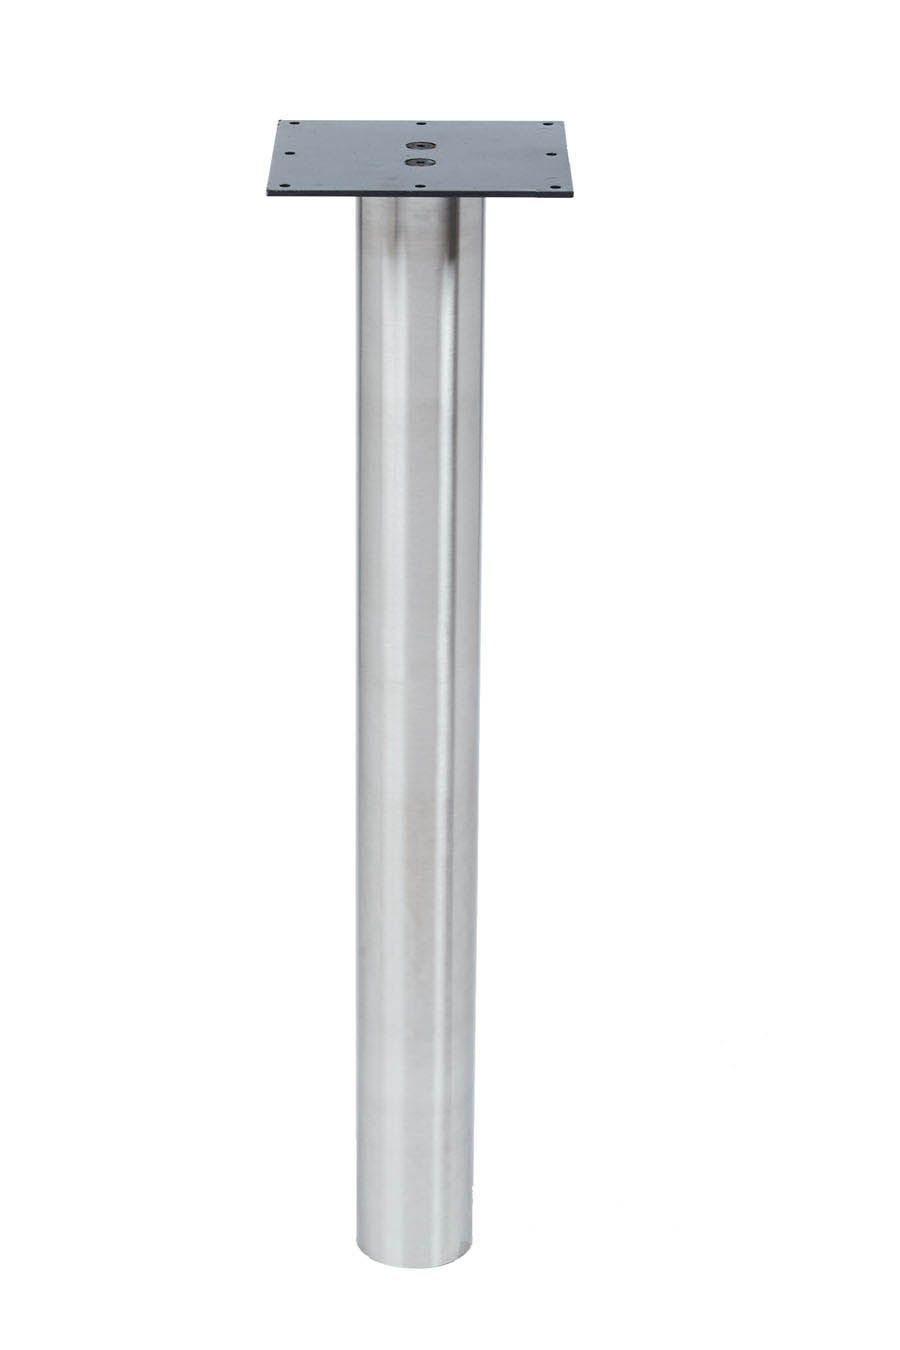 Katrina Stainless Steel Leg, Round, 2 3/8″ Diameter, SINGLE LEG,  250 lbs vertical load